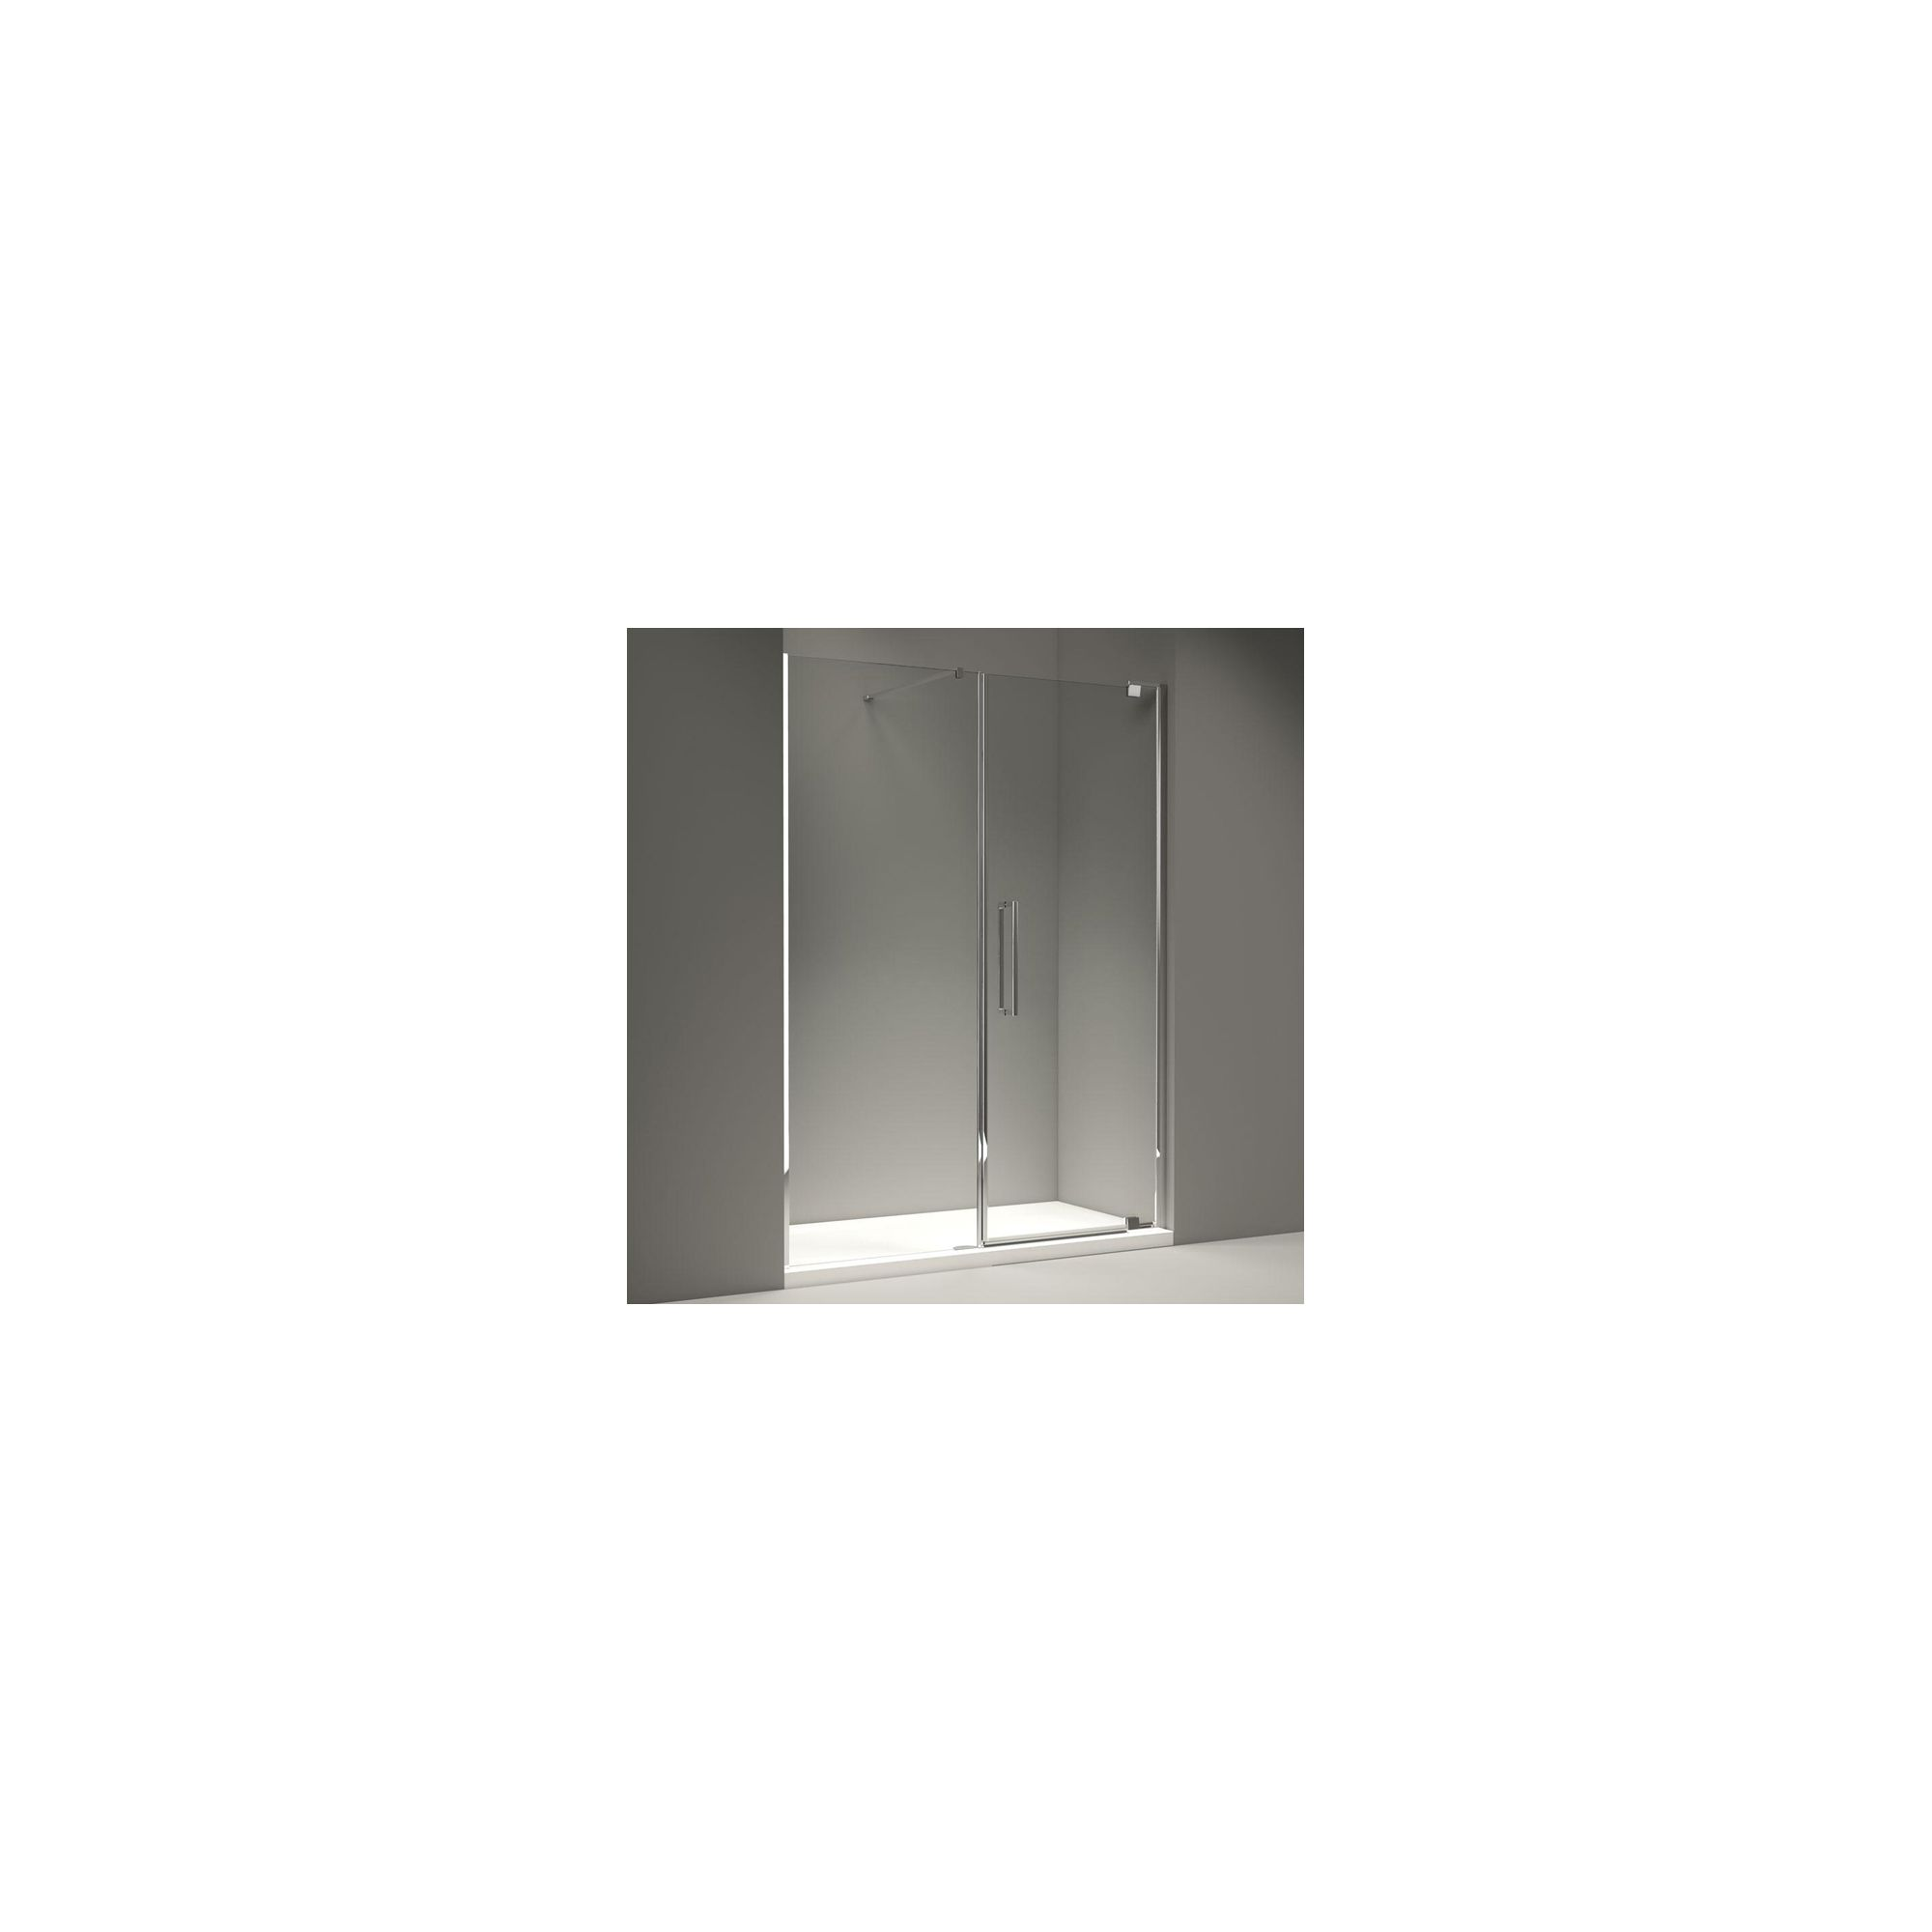 Merlyn Series 10 Inline Pivot Shower Door, 1700mm Wide, 10mm Clear Glass at Tesco Direct